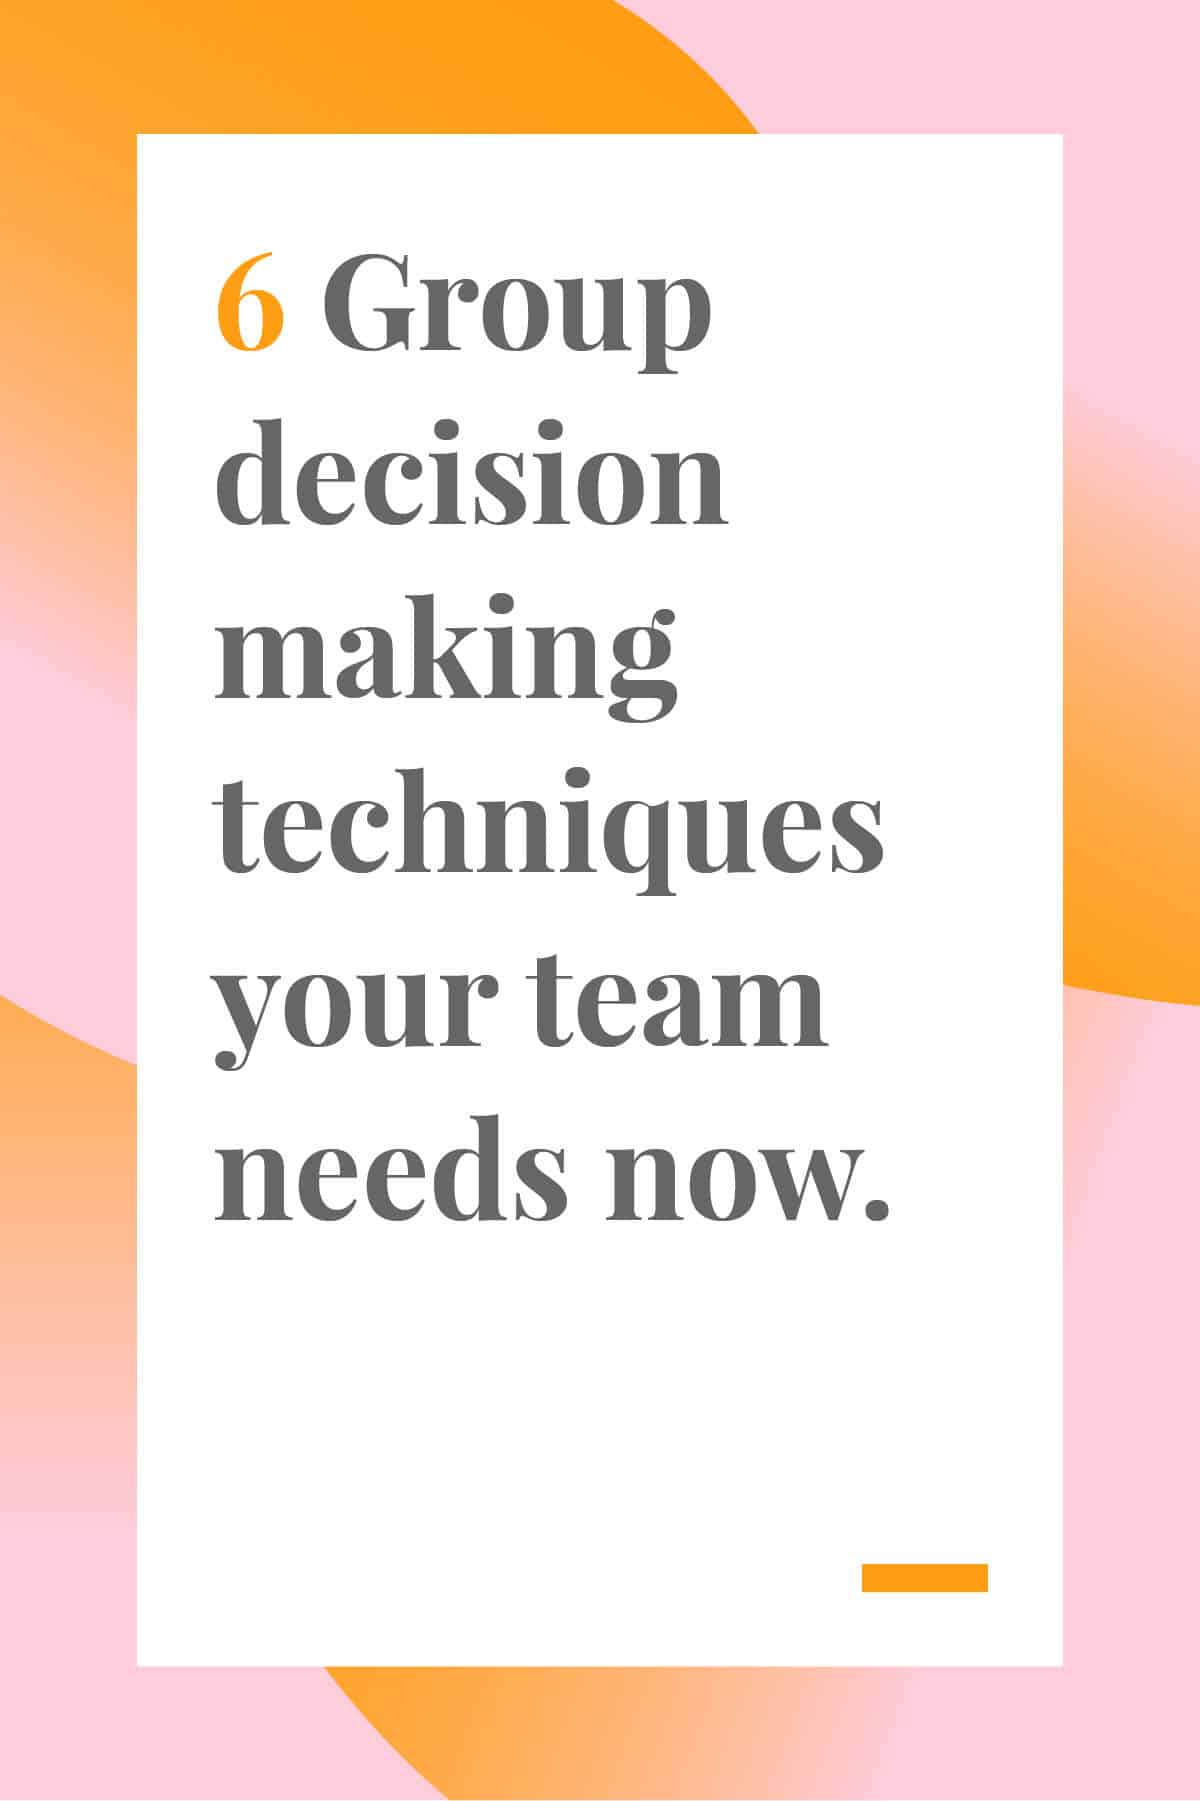 Trying to make a decision with your team can feel like herding cats. Take control of the situation with these 6 group decision making techniques. #leadership #managertips #management #teamwork